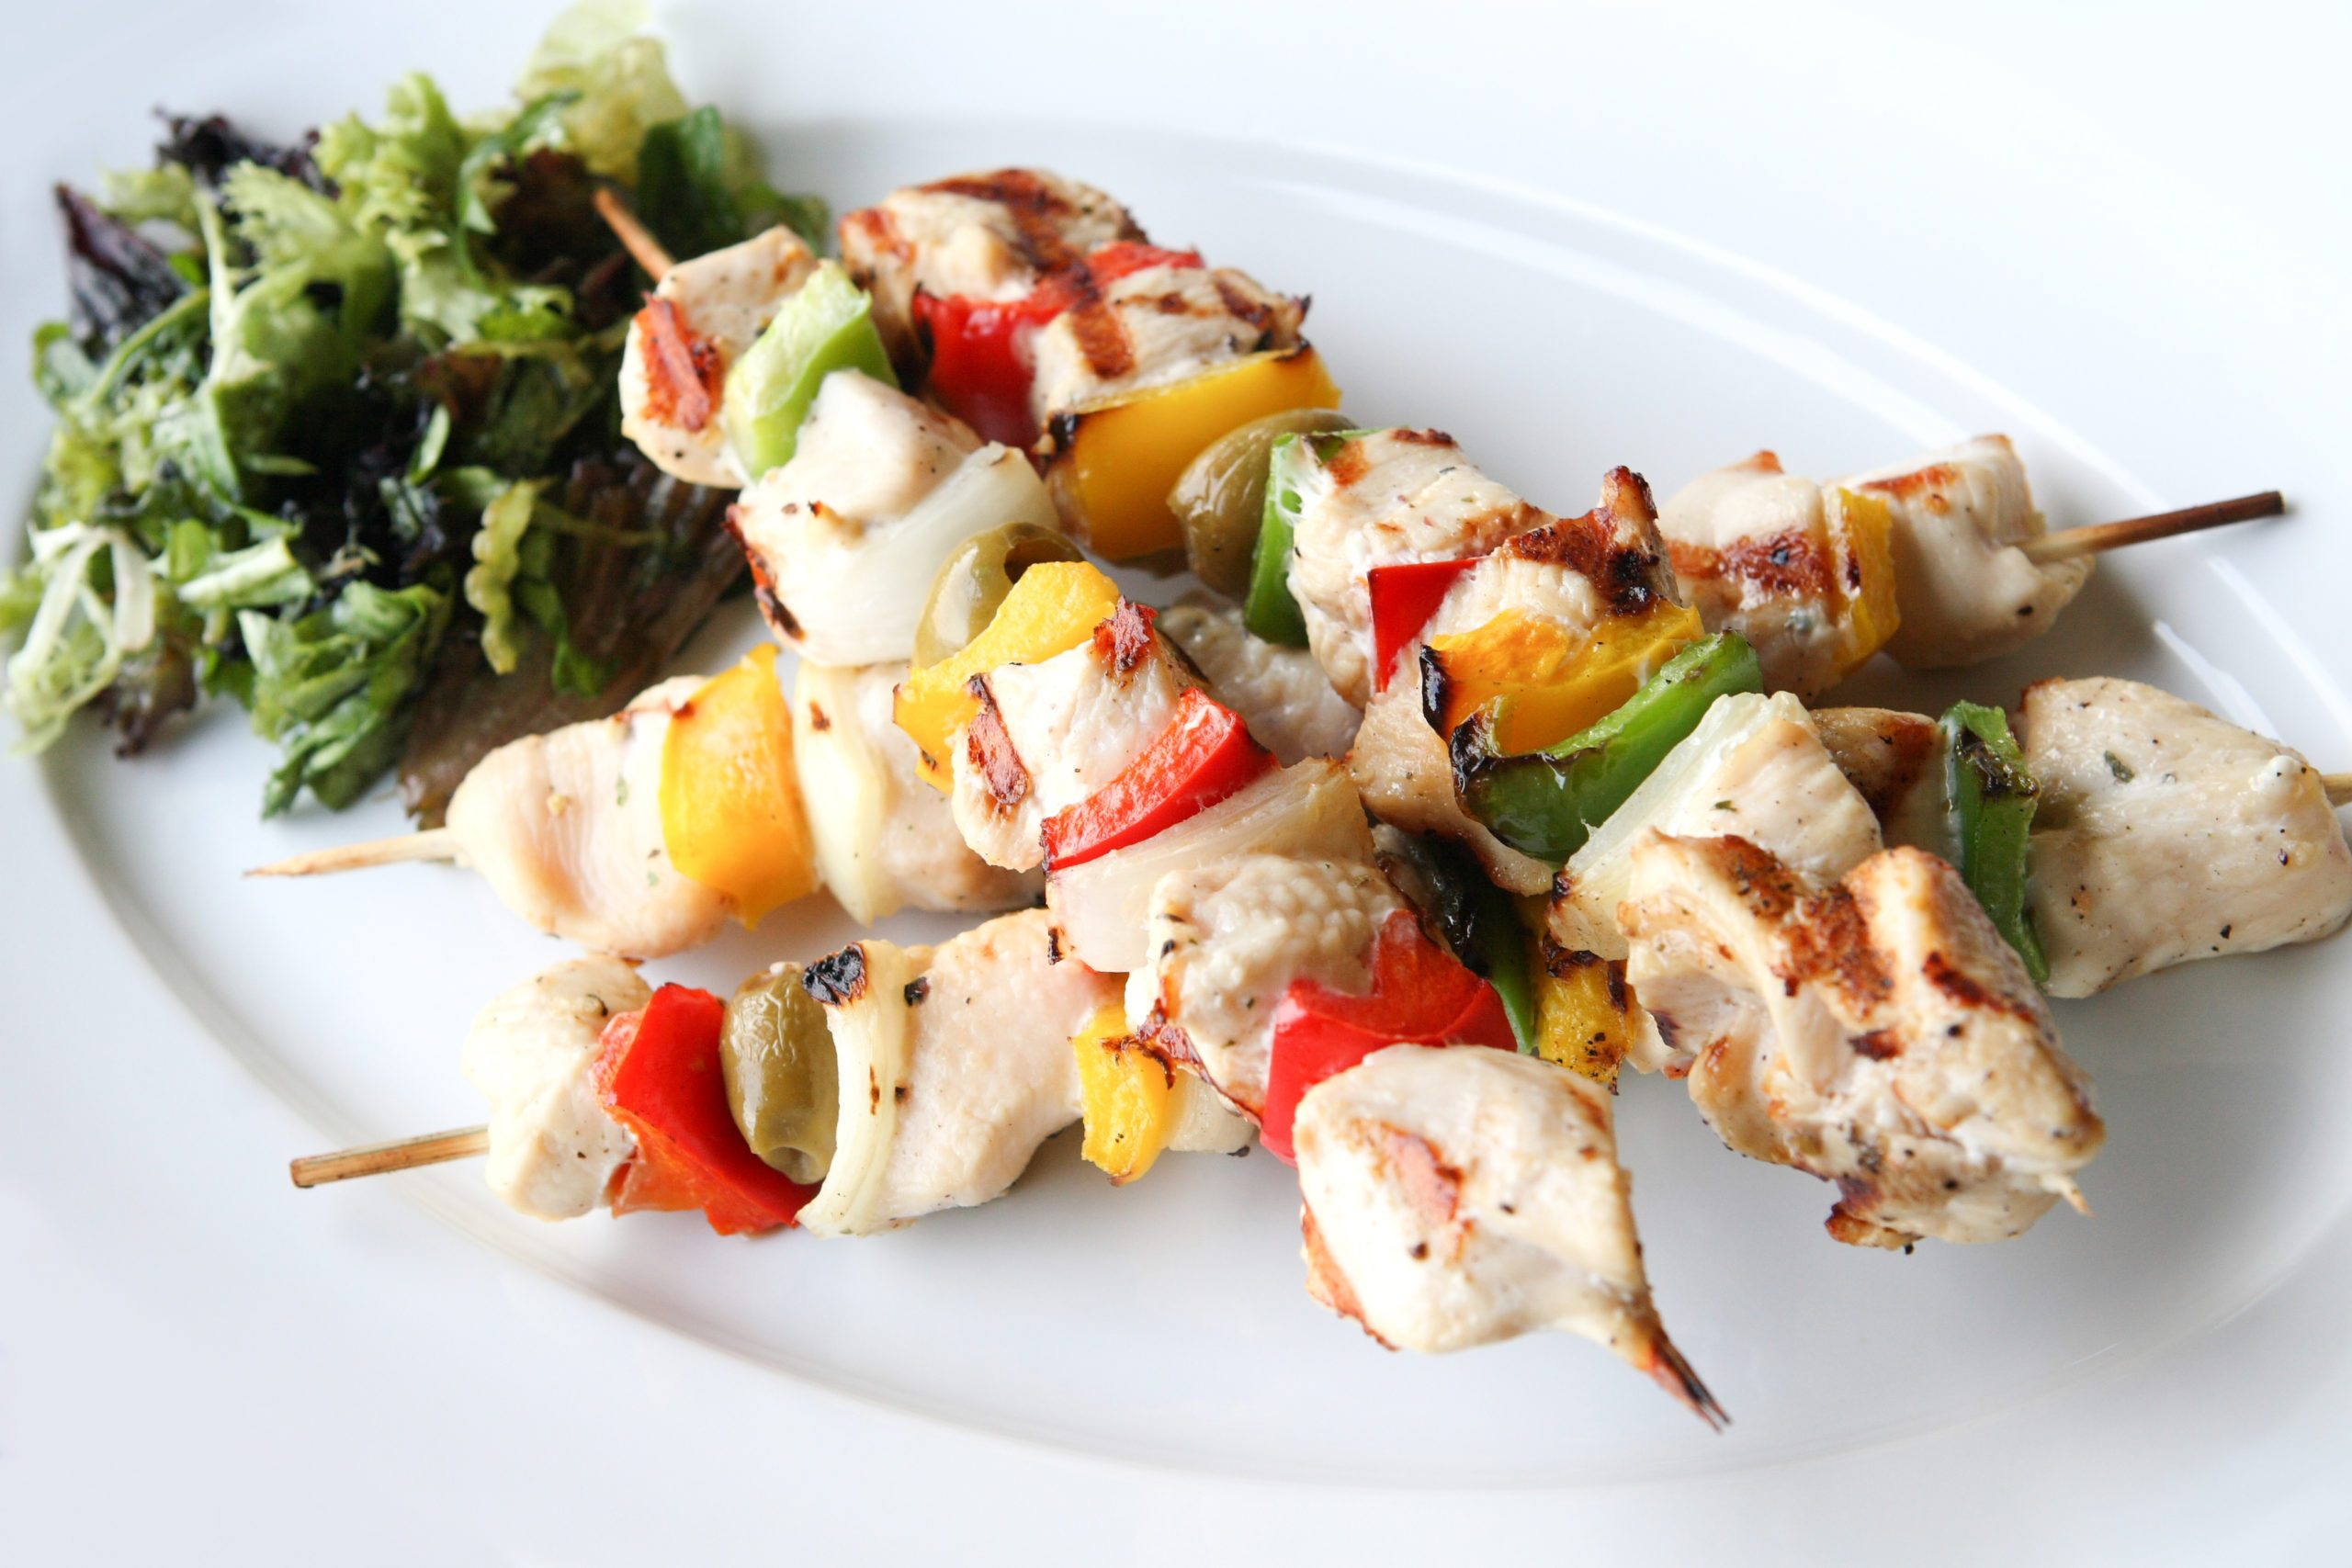 grilled chicken kabobs on plate with salad